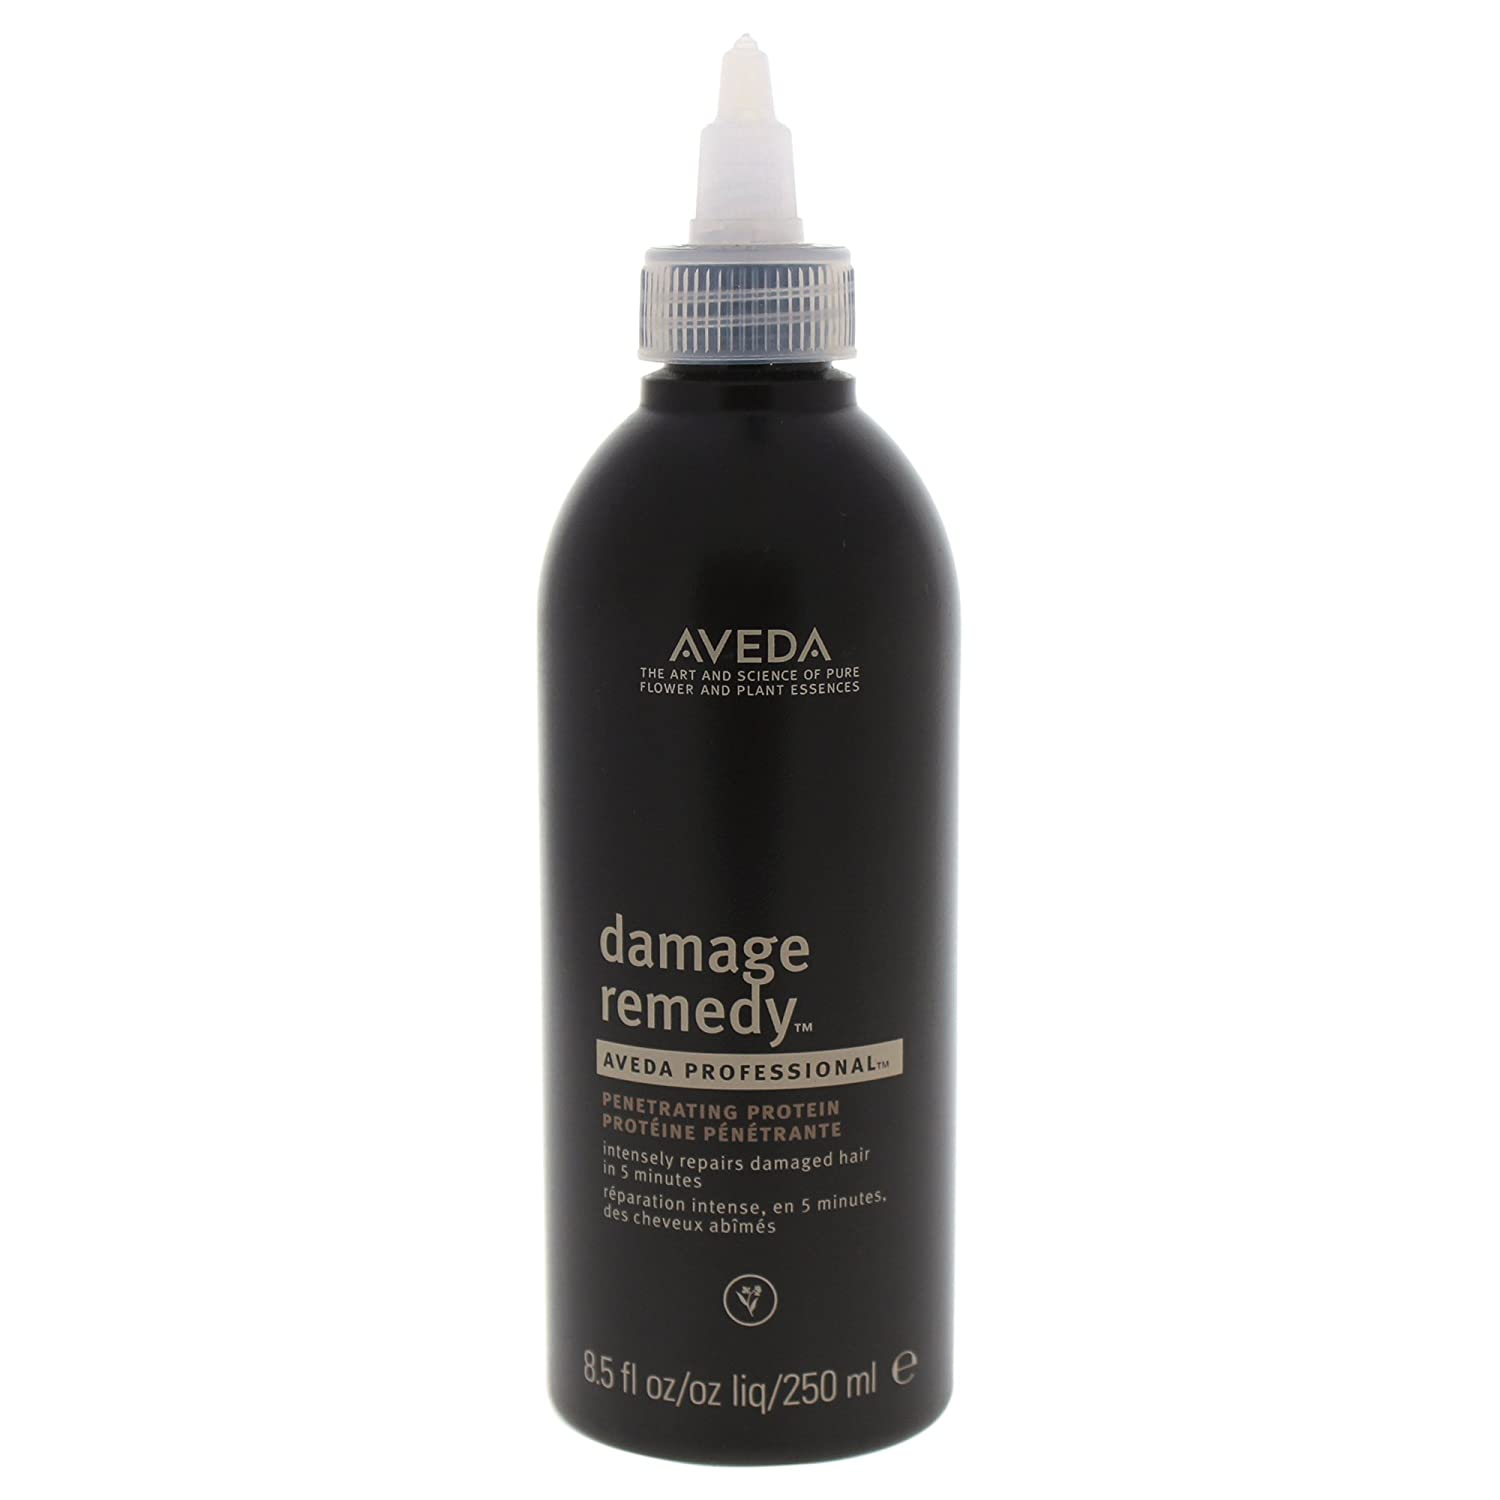 AVEDA damage remedy penetrating protein 1 count A94X010000 14180274344